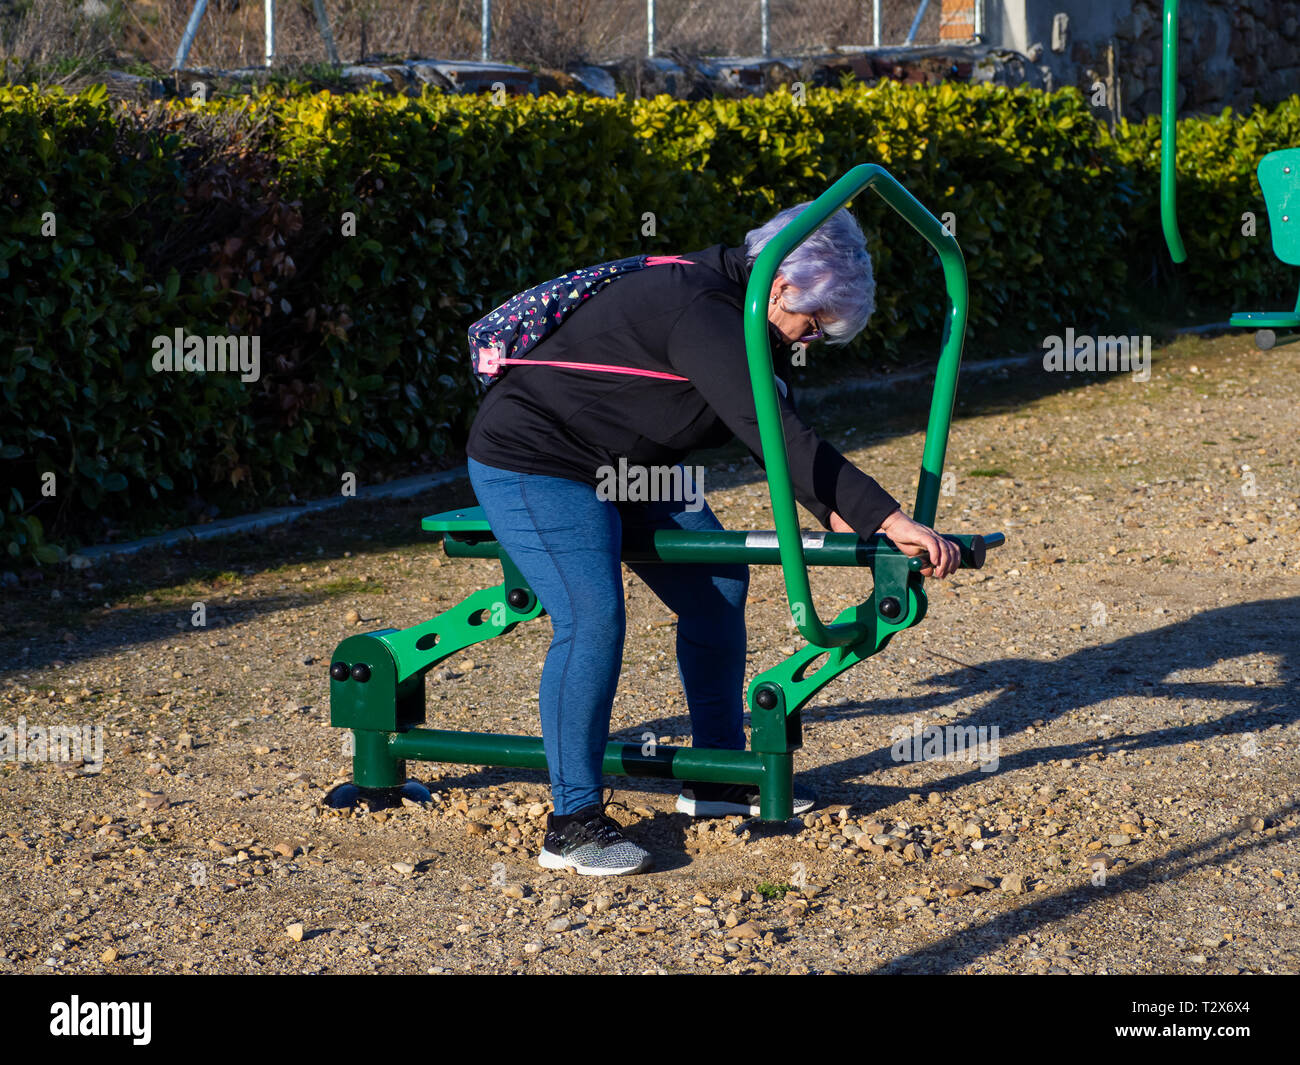 A senior woman with white hair practicing gymnastics in a bio-healthy park Stock Photo